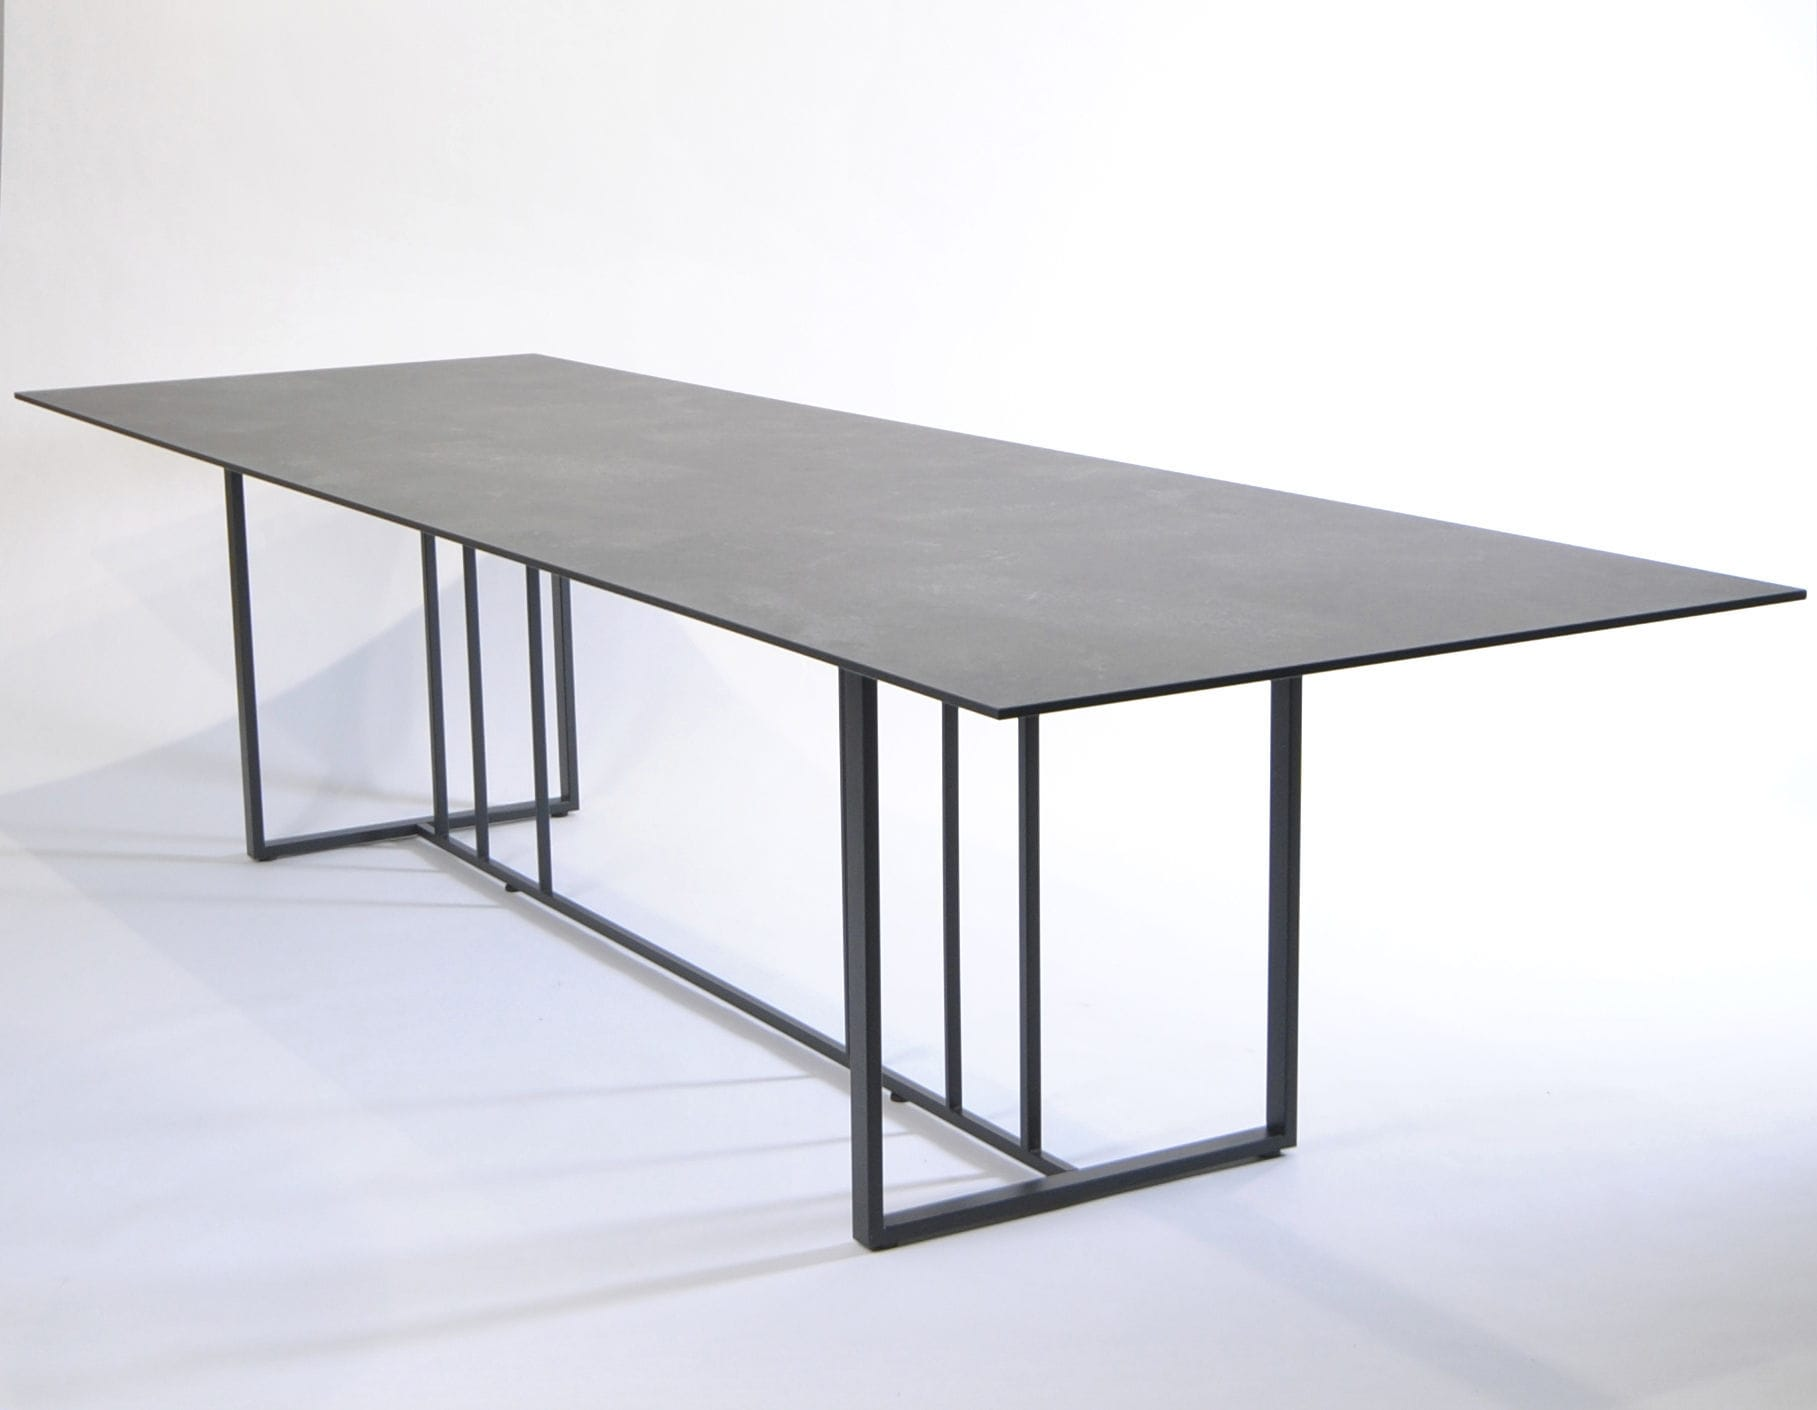 Fischer Möbel contemporary dining table laminate stainless steel rectangular